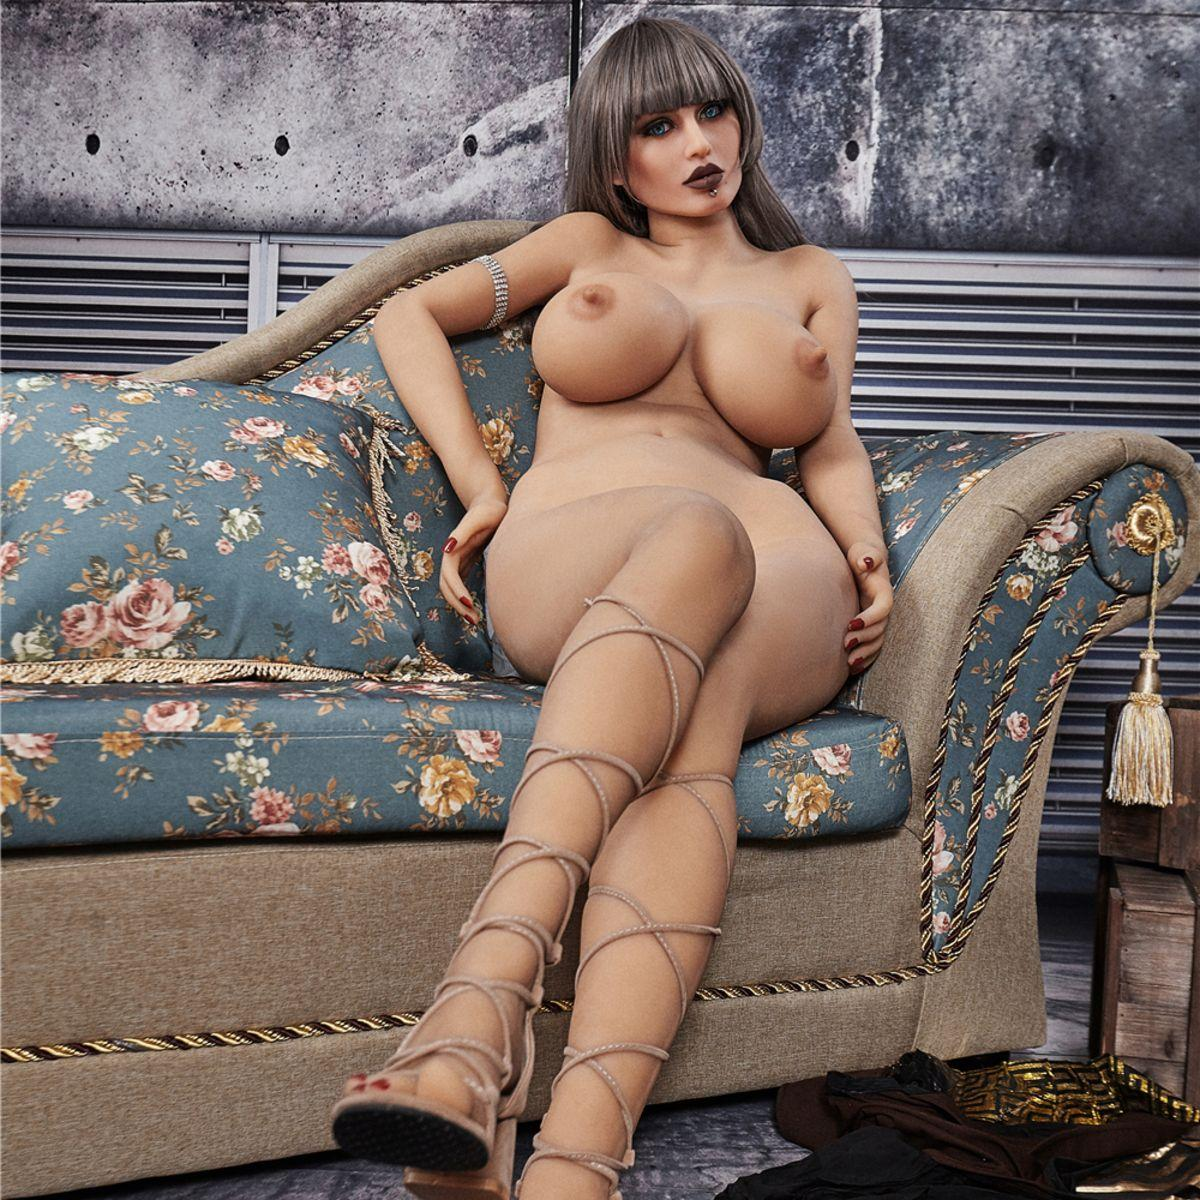 Neodoll Racy Yael - Realistic Sex Doll - 163cm Plus - Tan